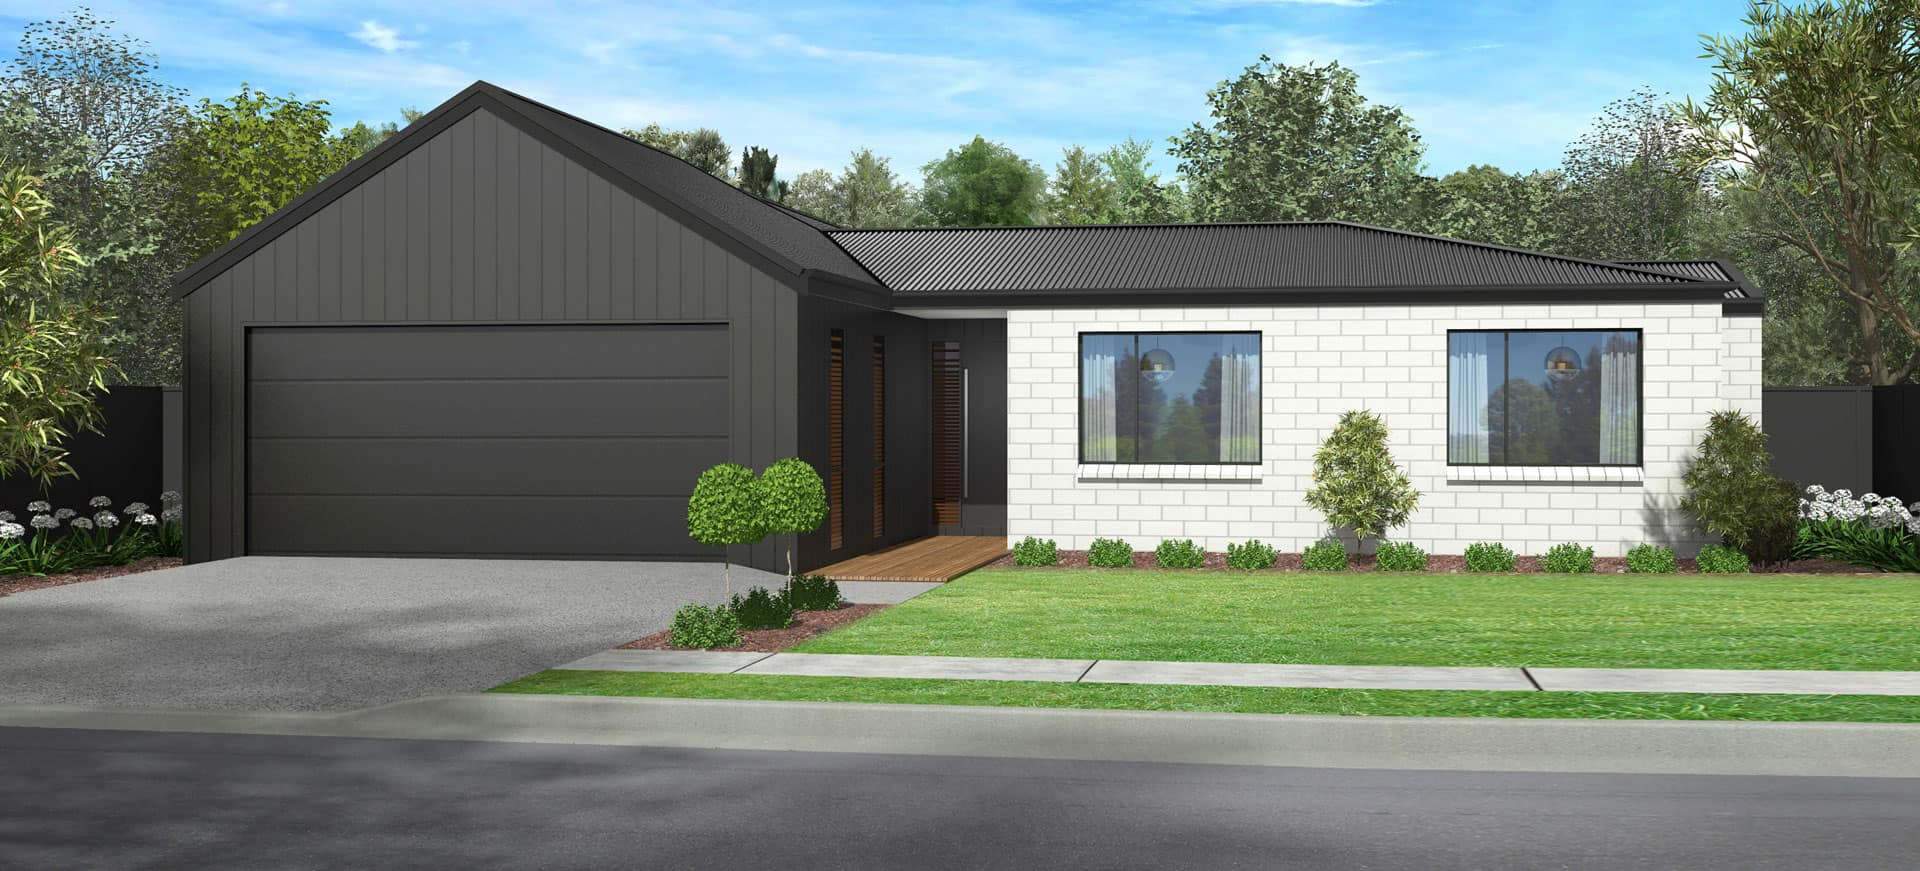 Haultain-State-Subdvision-Te-Awamutu-New-Zealand-First-Buyers-Home-Kiwi-Save-House-plan-Brooklyn-image-1